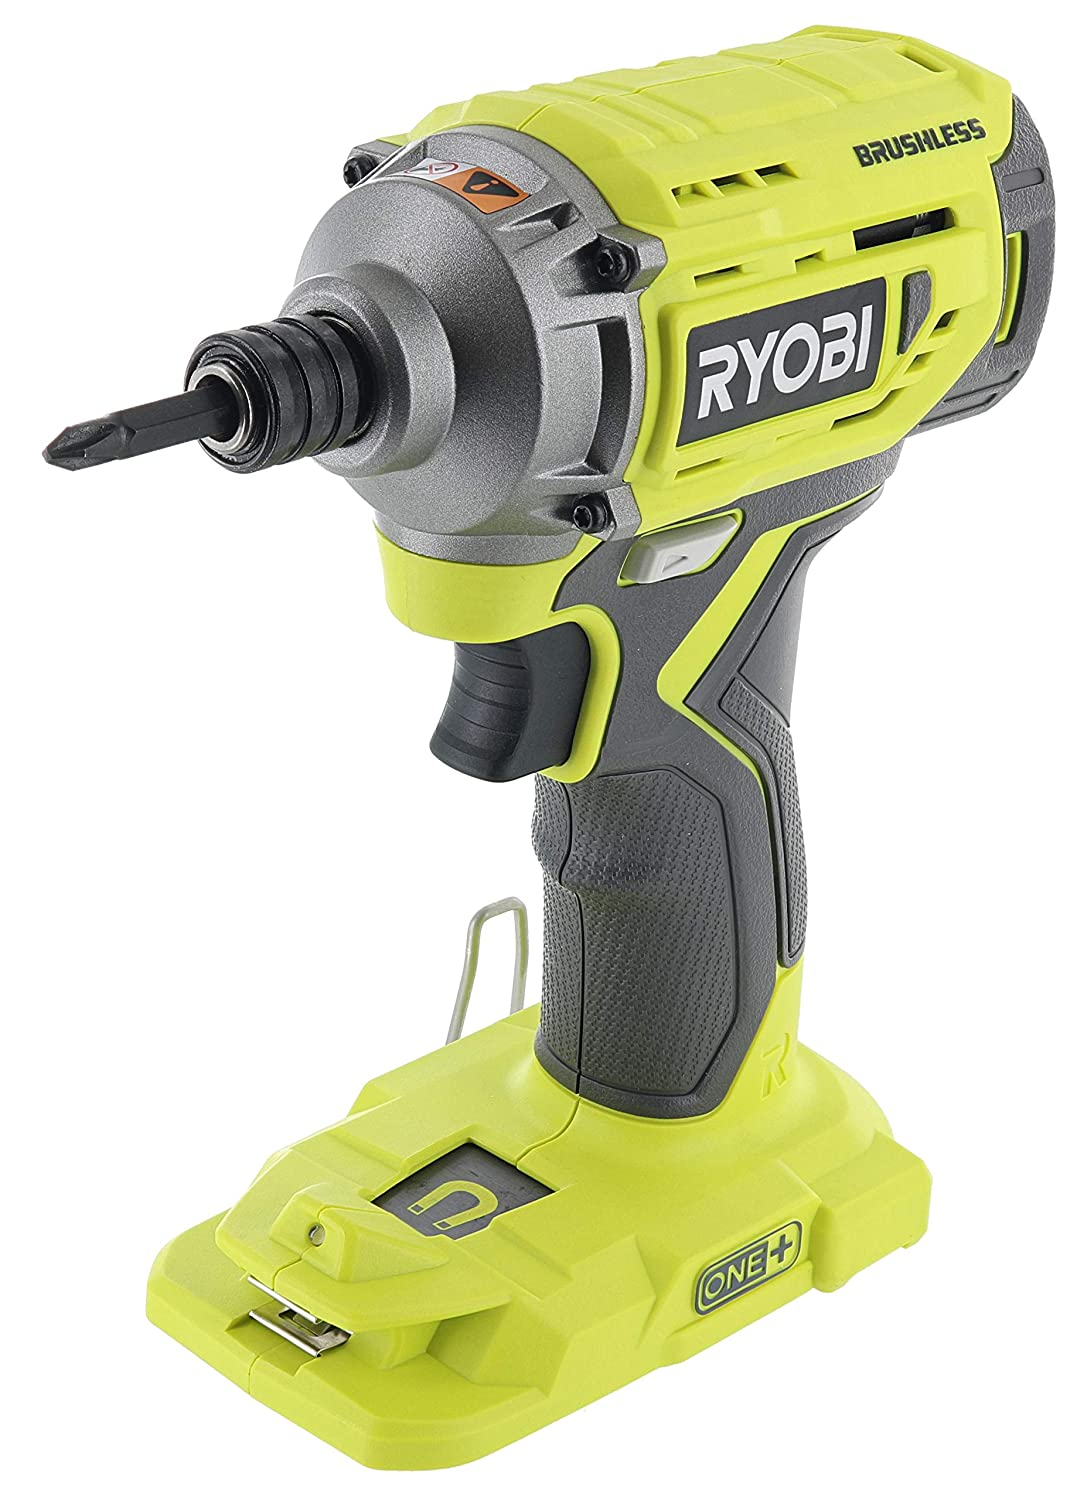 Ryobi P239 ONE+ 18 Volt 1/4-inch Brushless Impact Driver (Tool Only - Battery and Charger NOT Included)